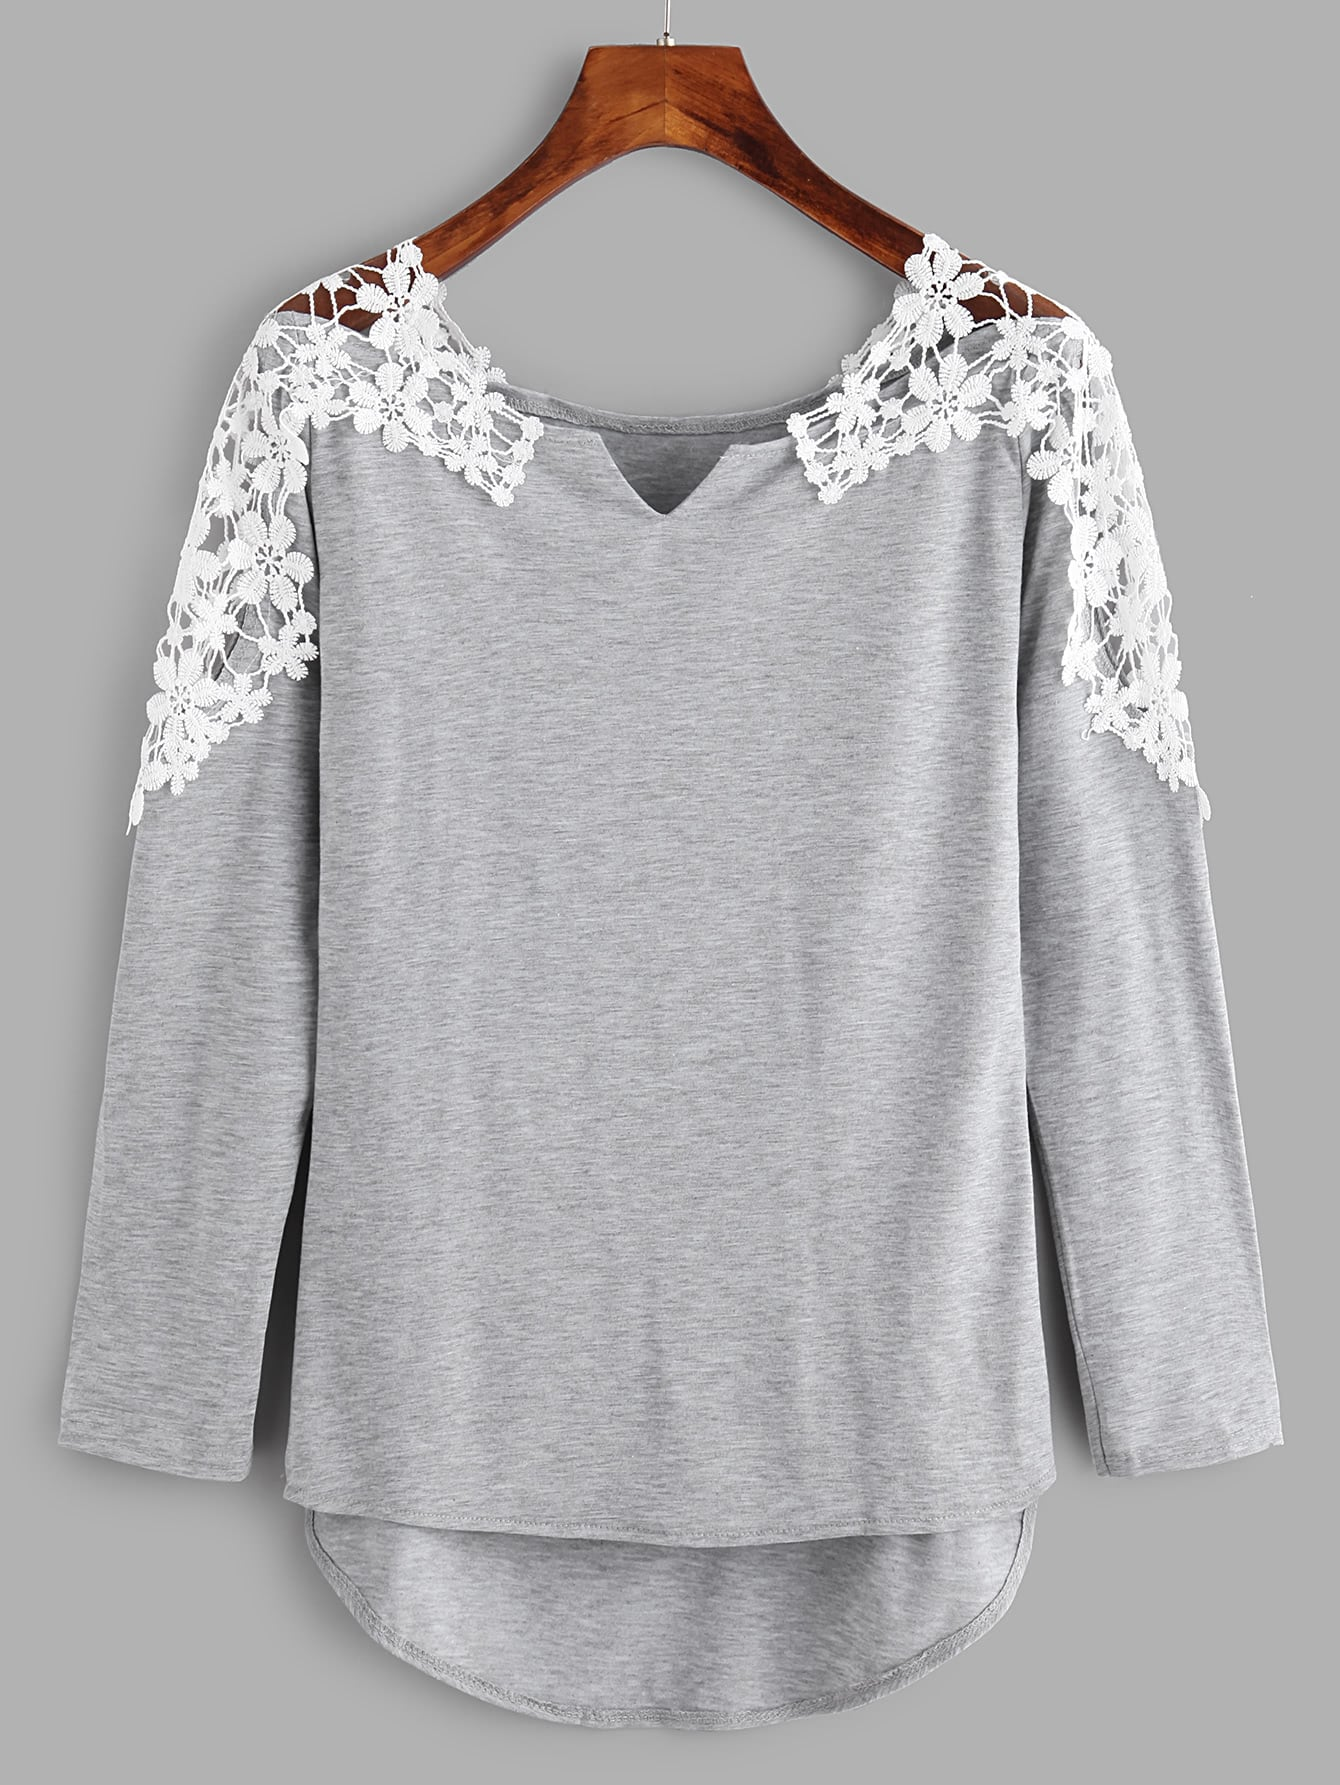 Contrast Crochet V Cut High Low Marled Tee tee171116303